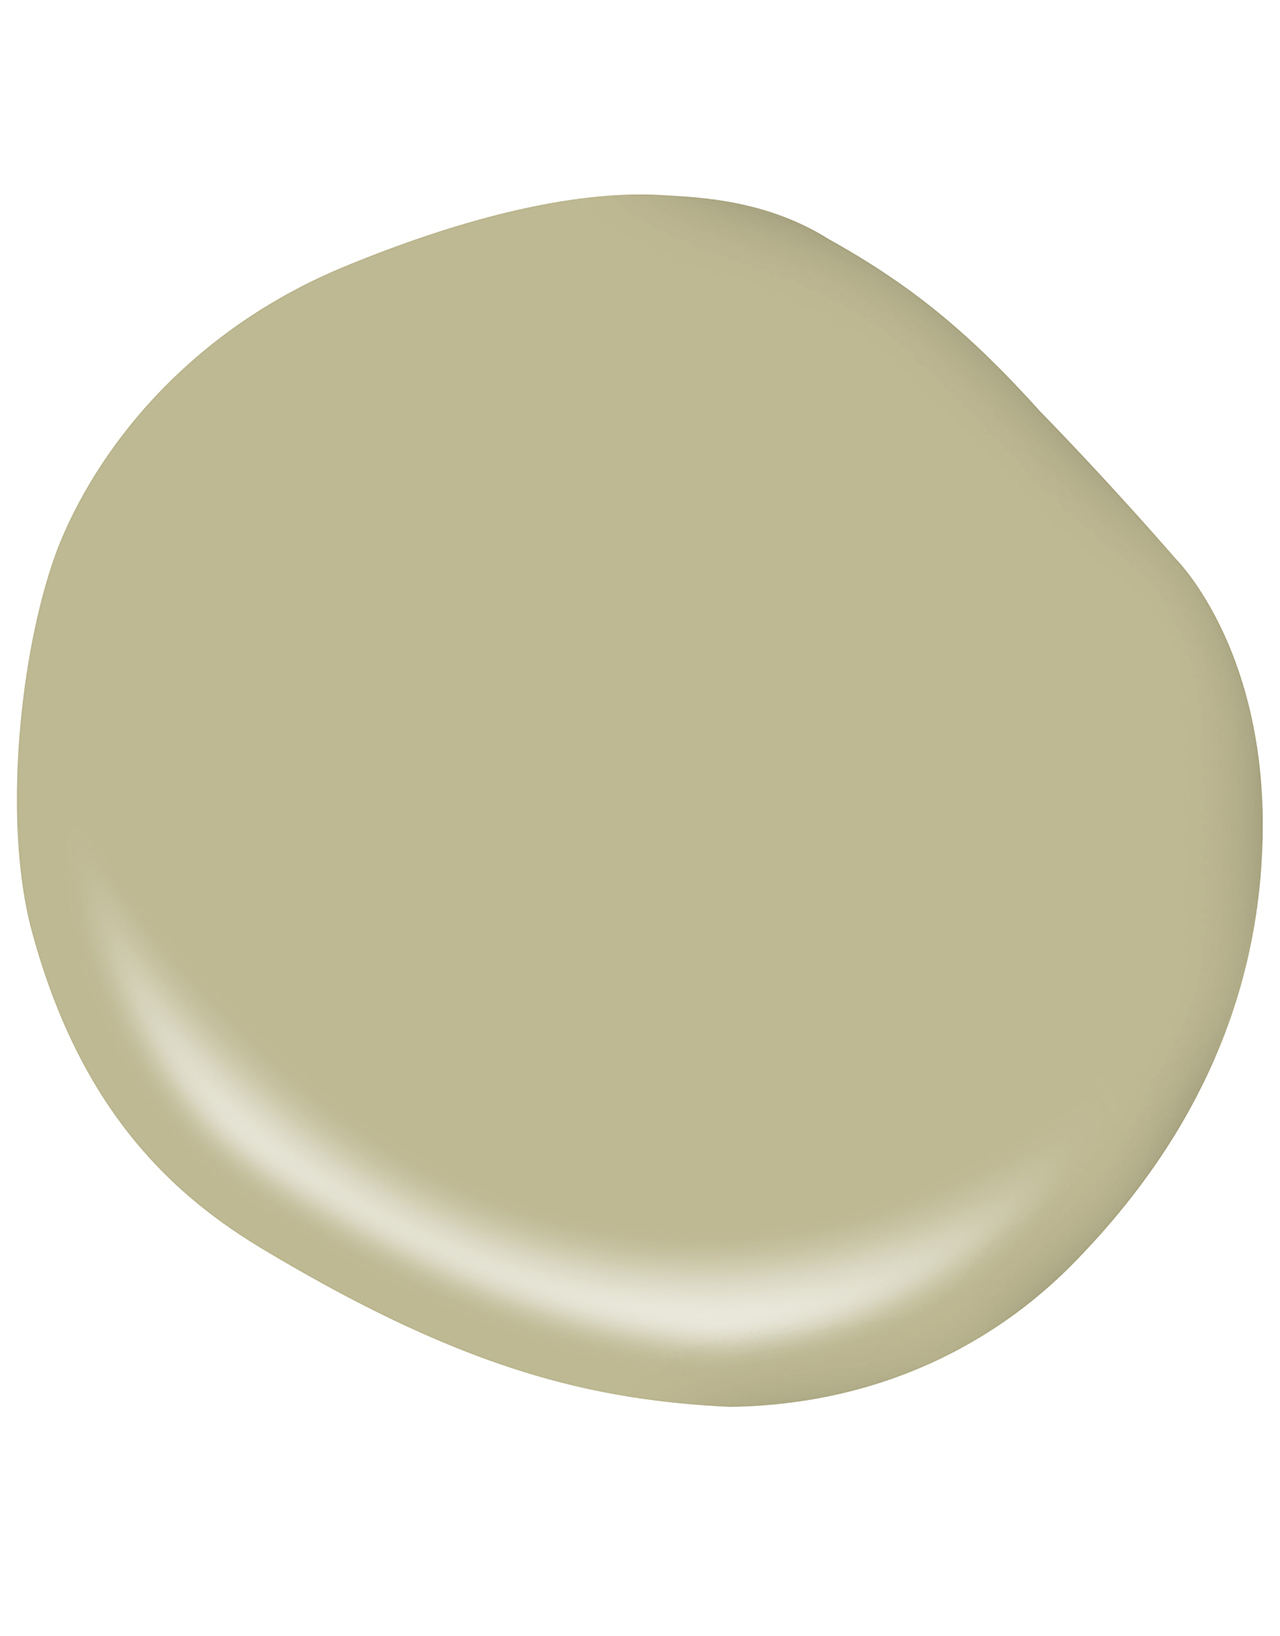 Muted Green paint swatch